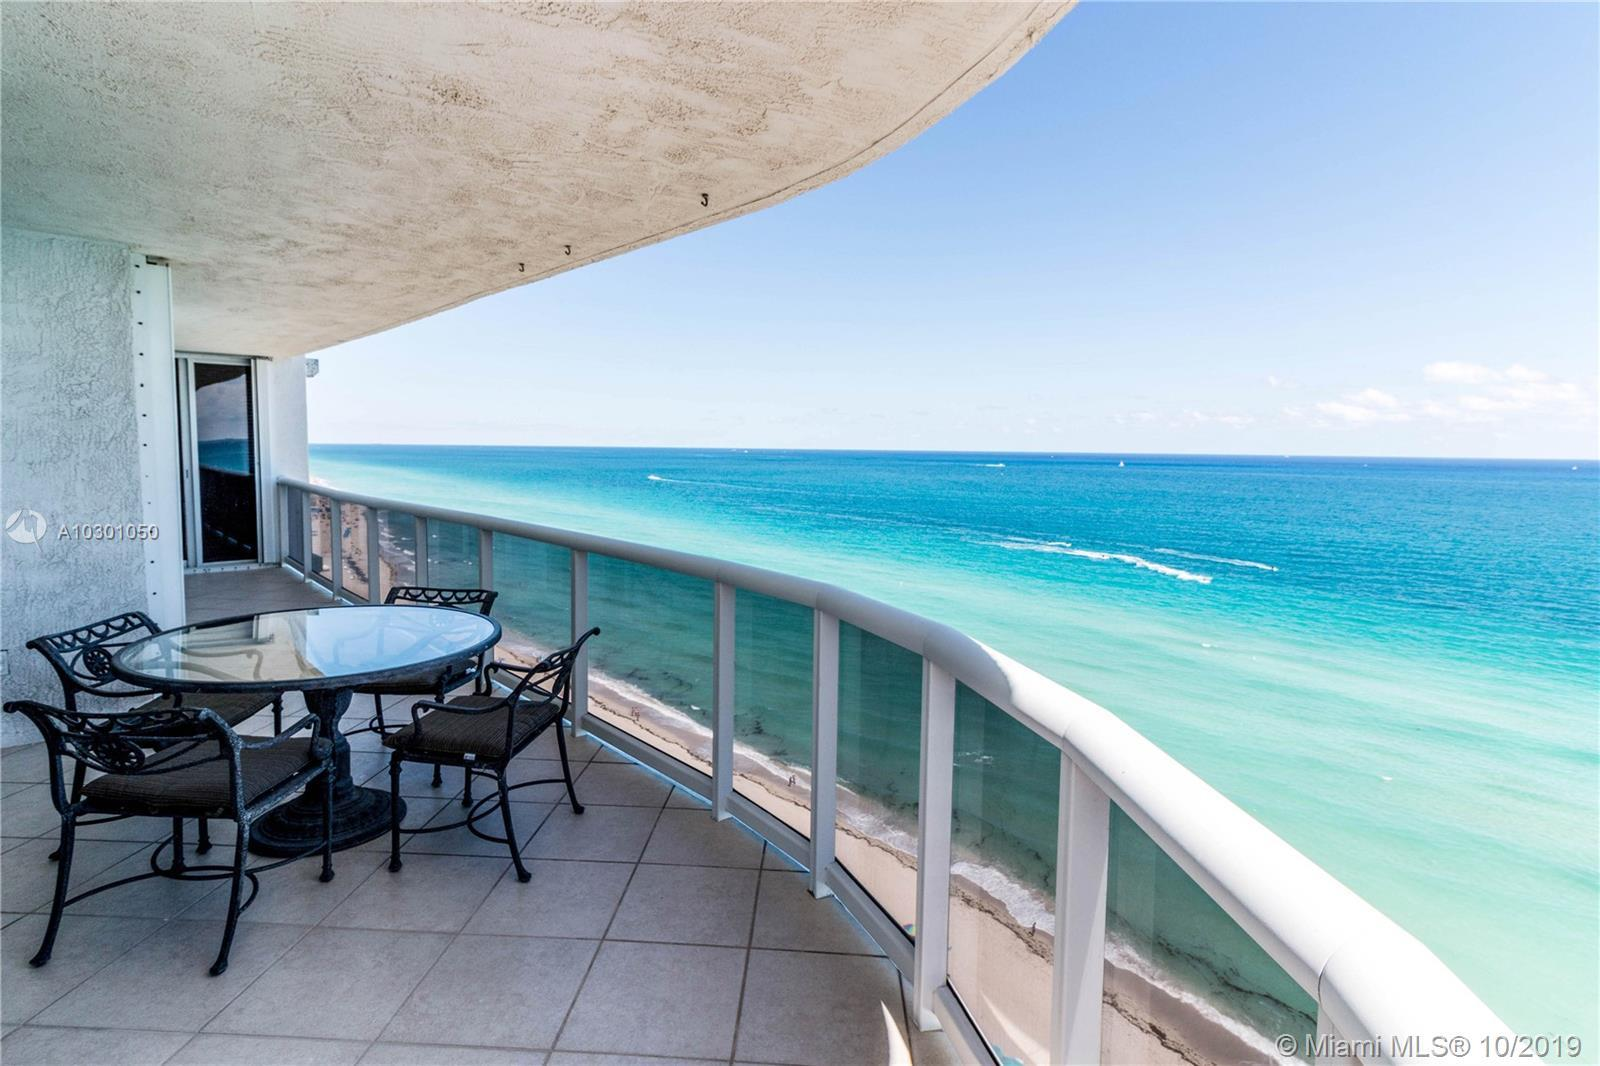 """AMAZING OCEAN FRONT PROPERTY """"07 LINE RARELY AVAILABLE FOR SALE """"BEST IN THE BUILDING!!"""" THIS IS A C"""